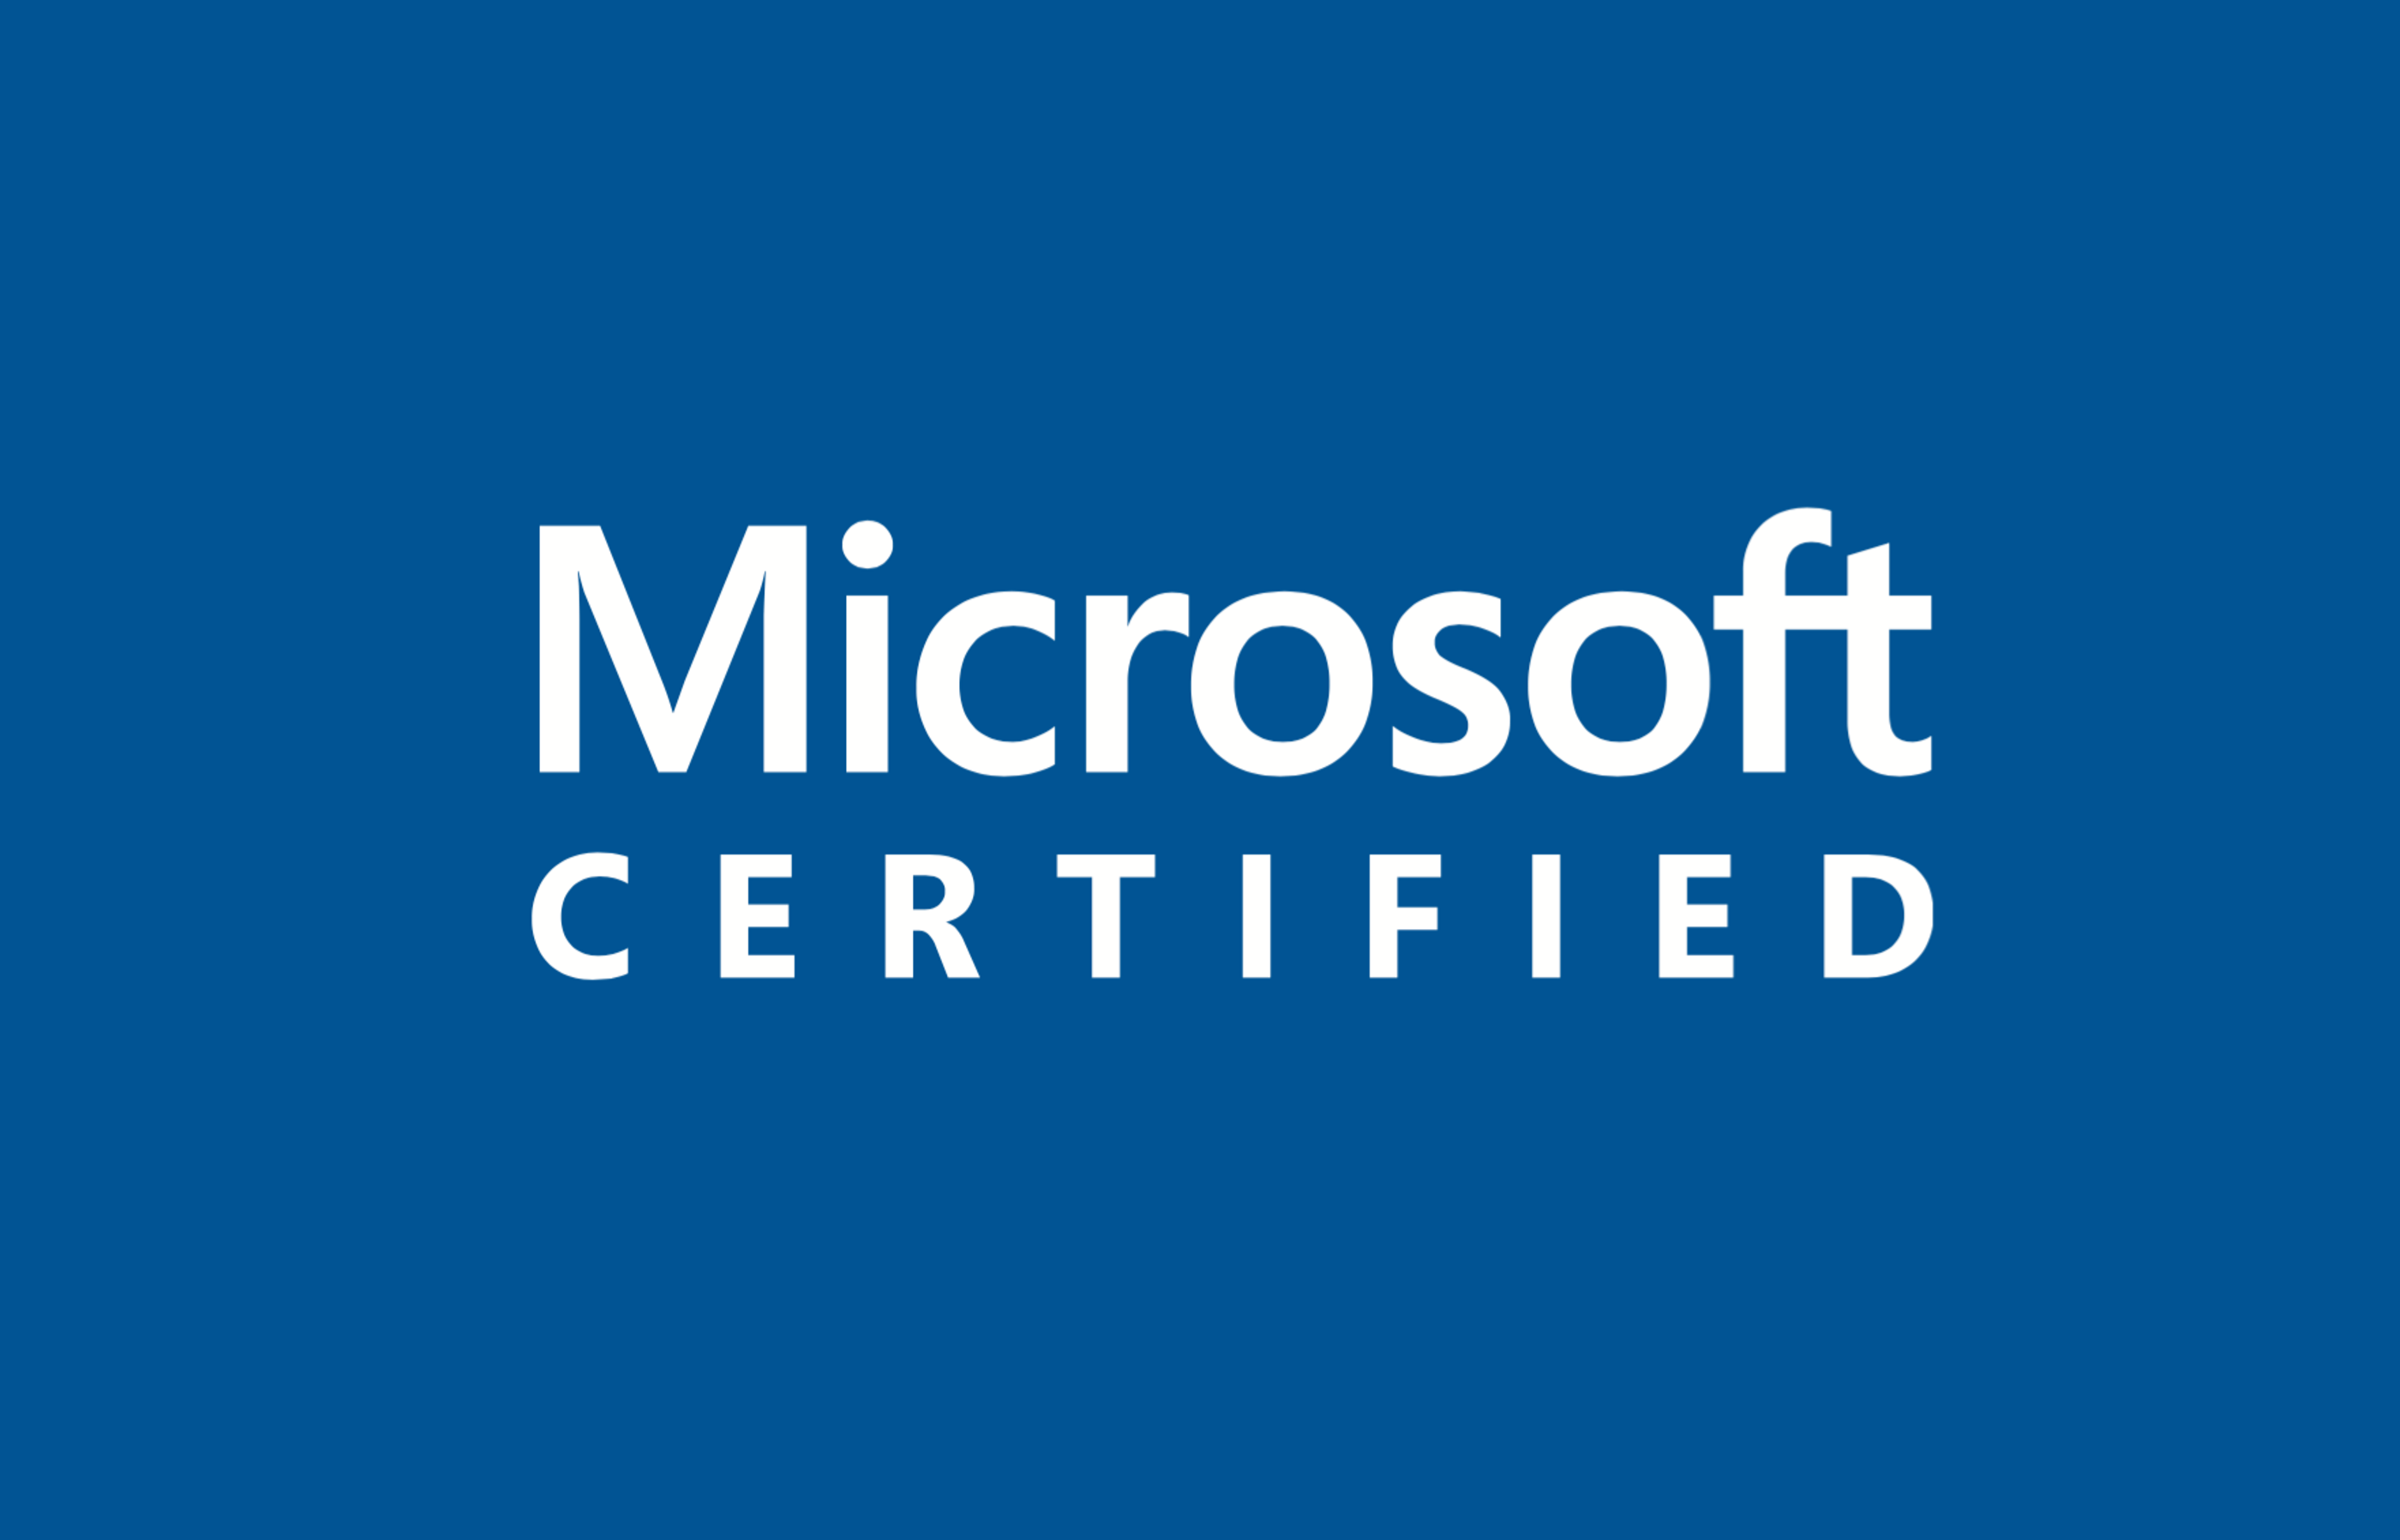 Top Reasons to Get Microsoft MCSE Certification and Start Your New Professional Life